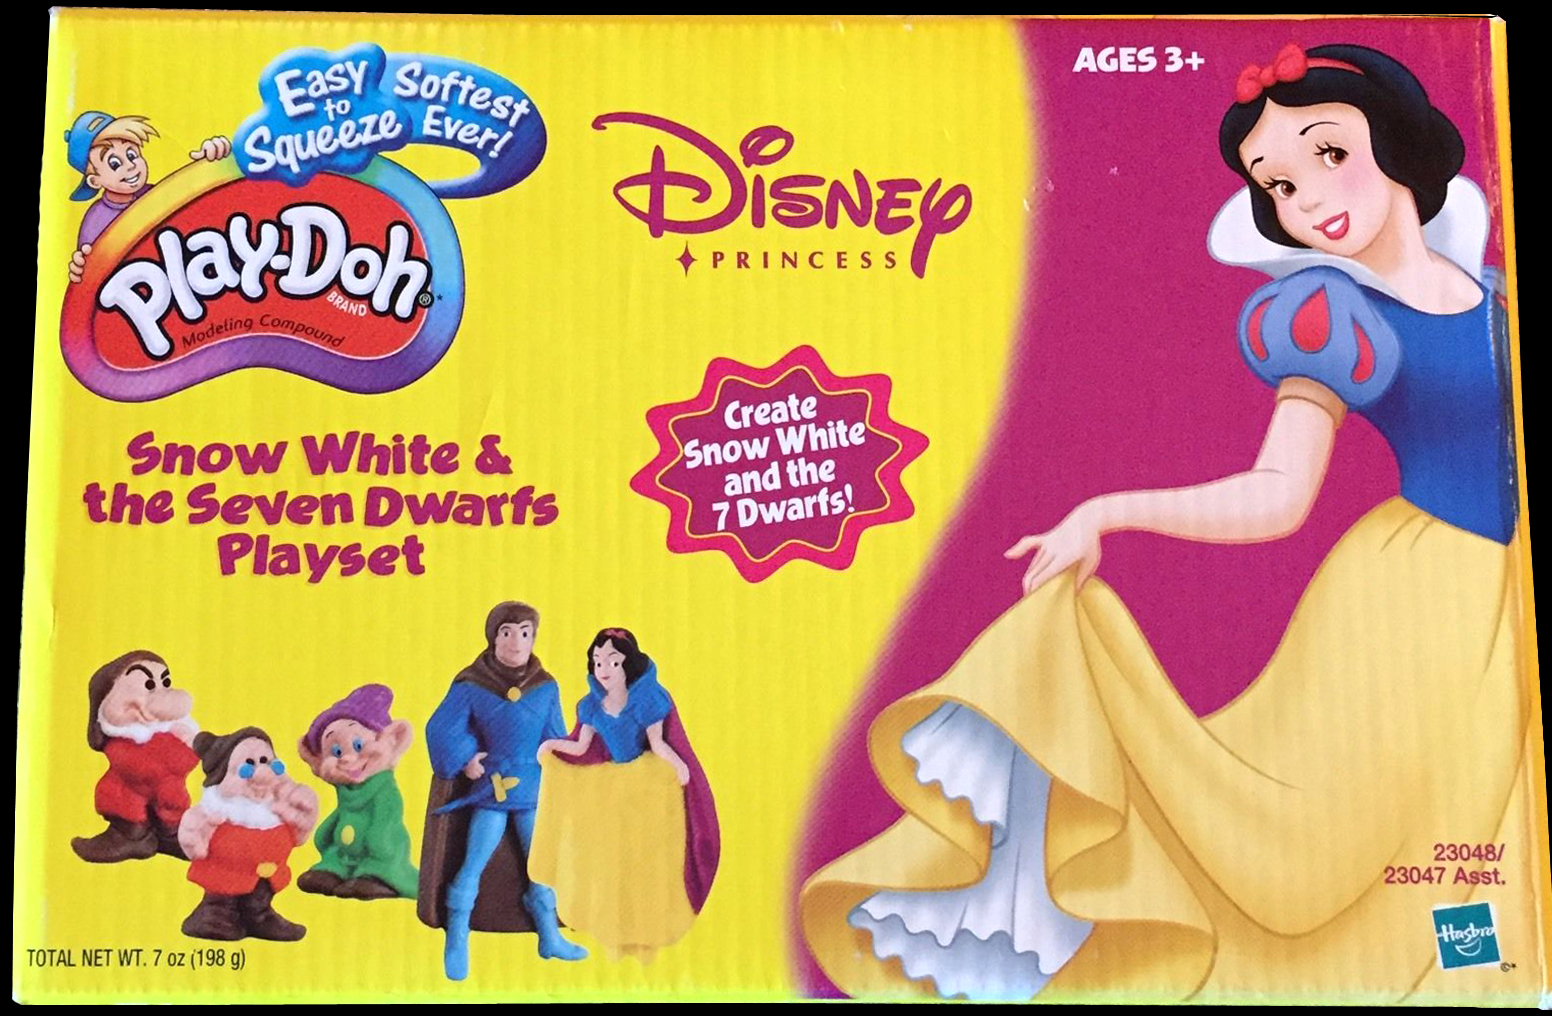 386ad3f9cf 23048 23047 Asst. Includes a 5 oz. and 2 oz. can of Play-Doh